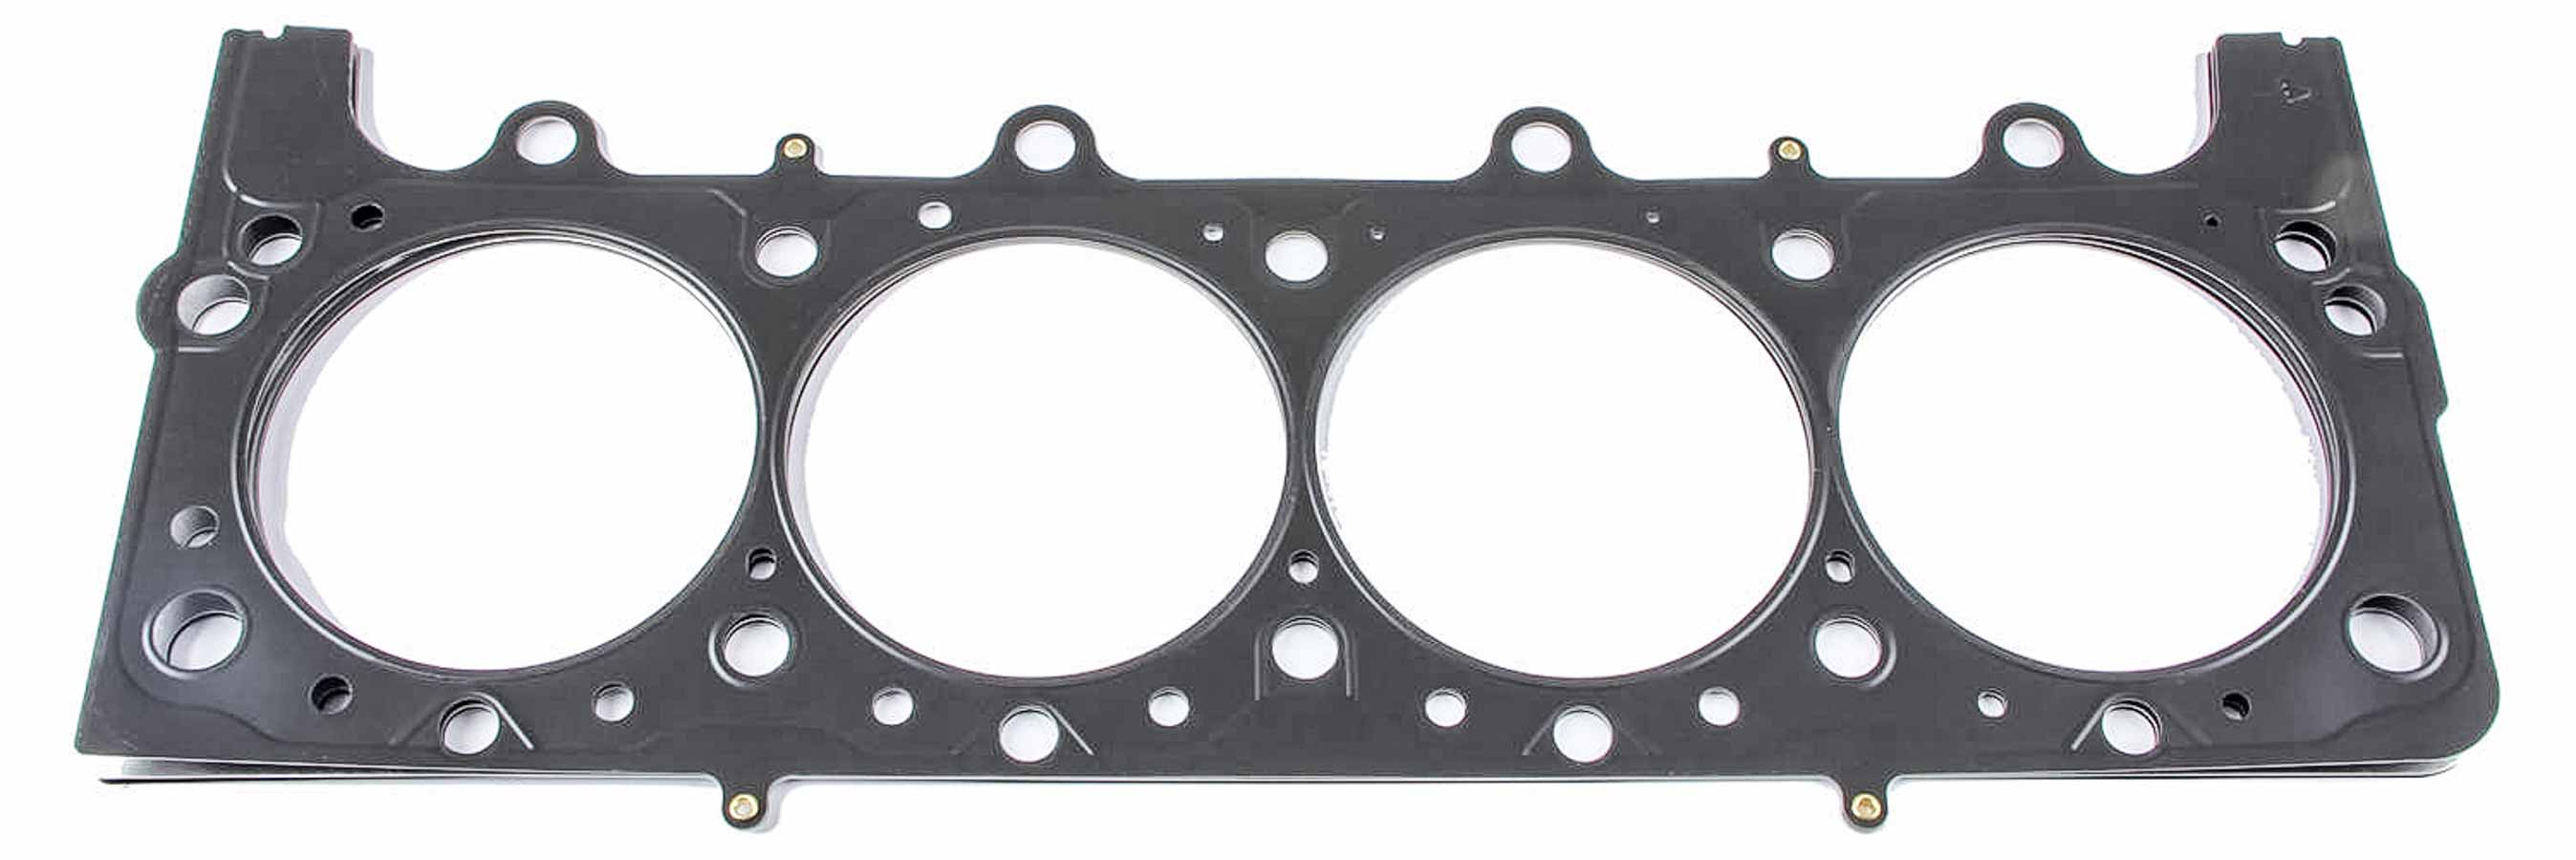 """Cometic Cylinder Head Gasket C5739-051; MLS Stainless .051/"""" 4.060/"""" for Chevy"""